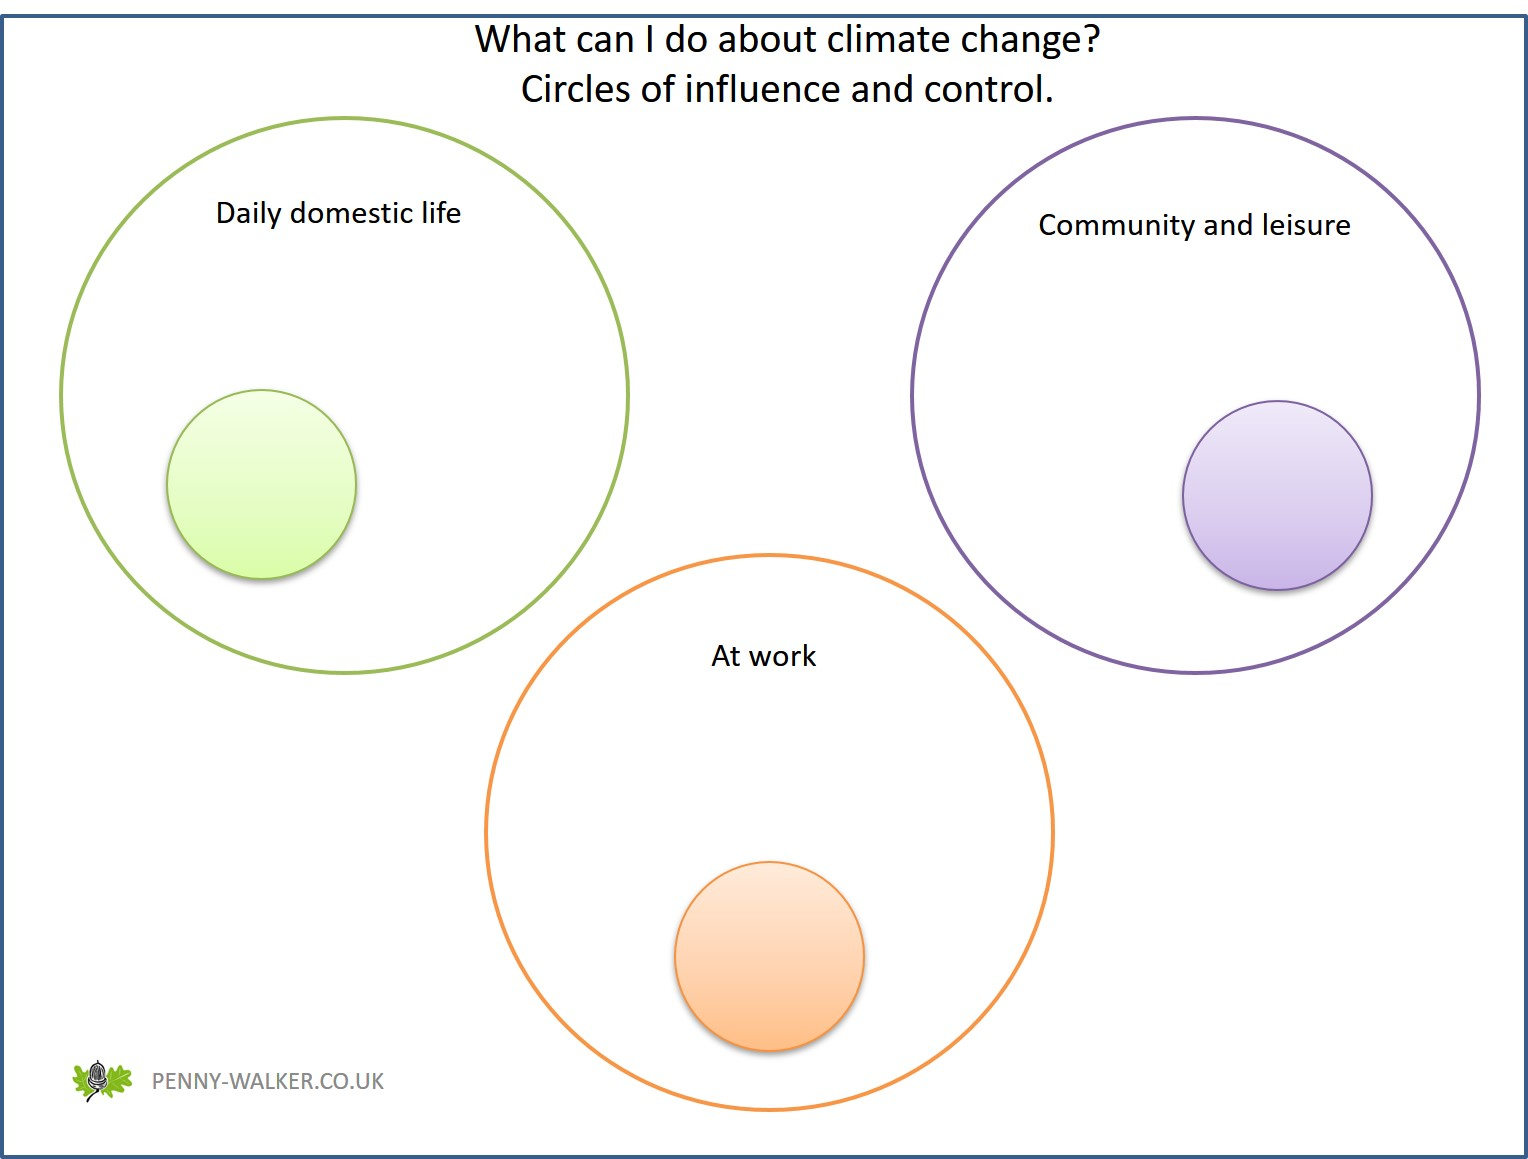 circles of influence control climate change 2.jpg